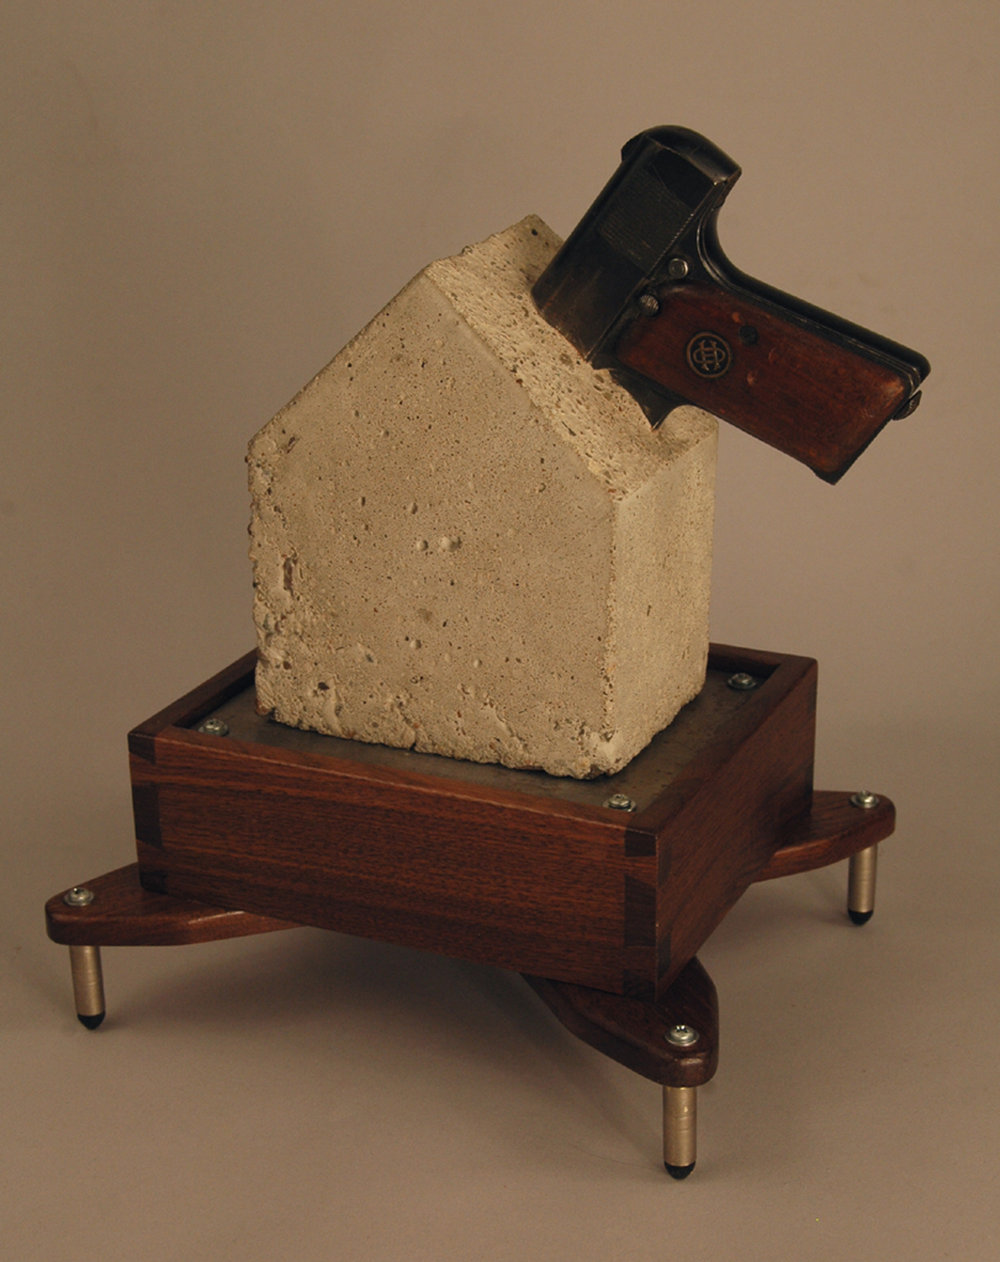 "My contribution to the project: Safe, Effective, Stylish Device for Handgun Storage in the Home; 2016; wood, concrete, steel, bullet casings, disabled handgun; 18""h x 17""w x 14""d"